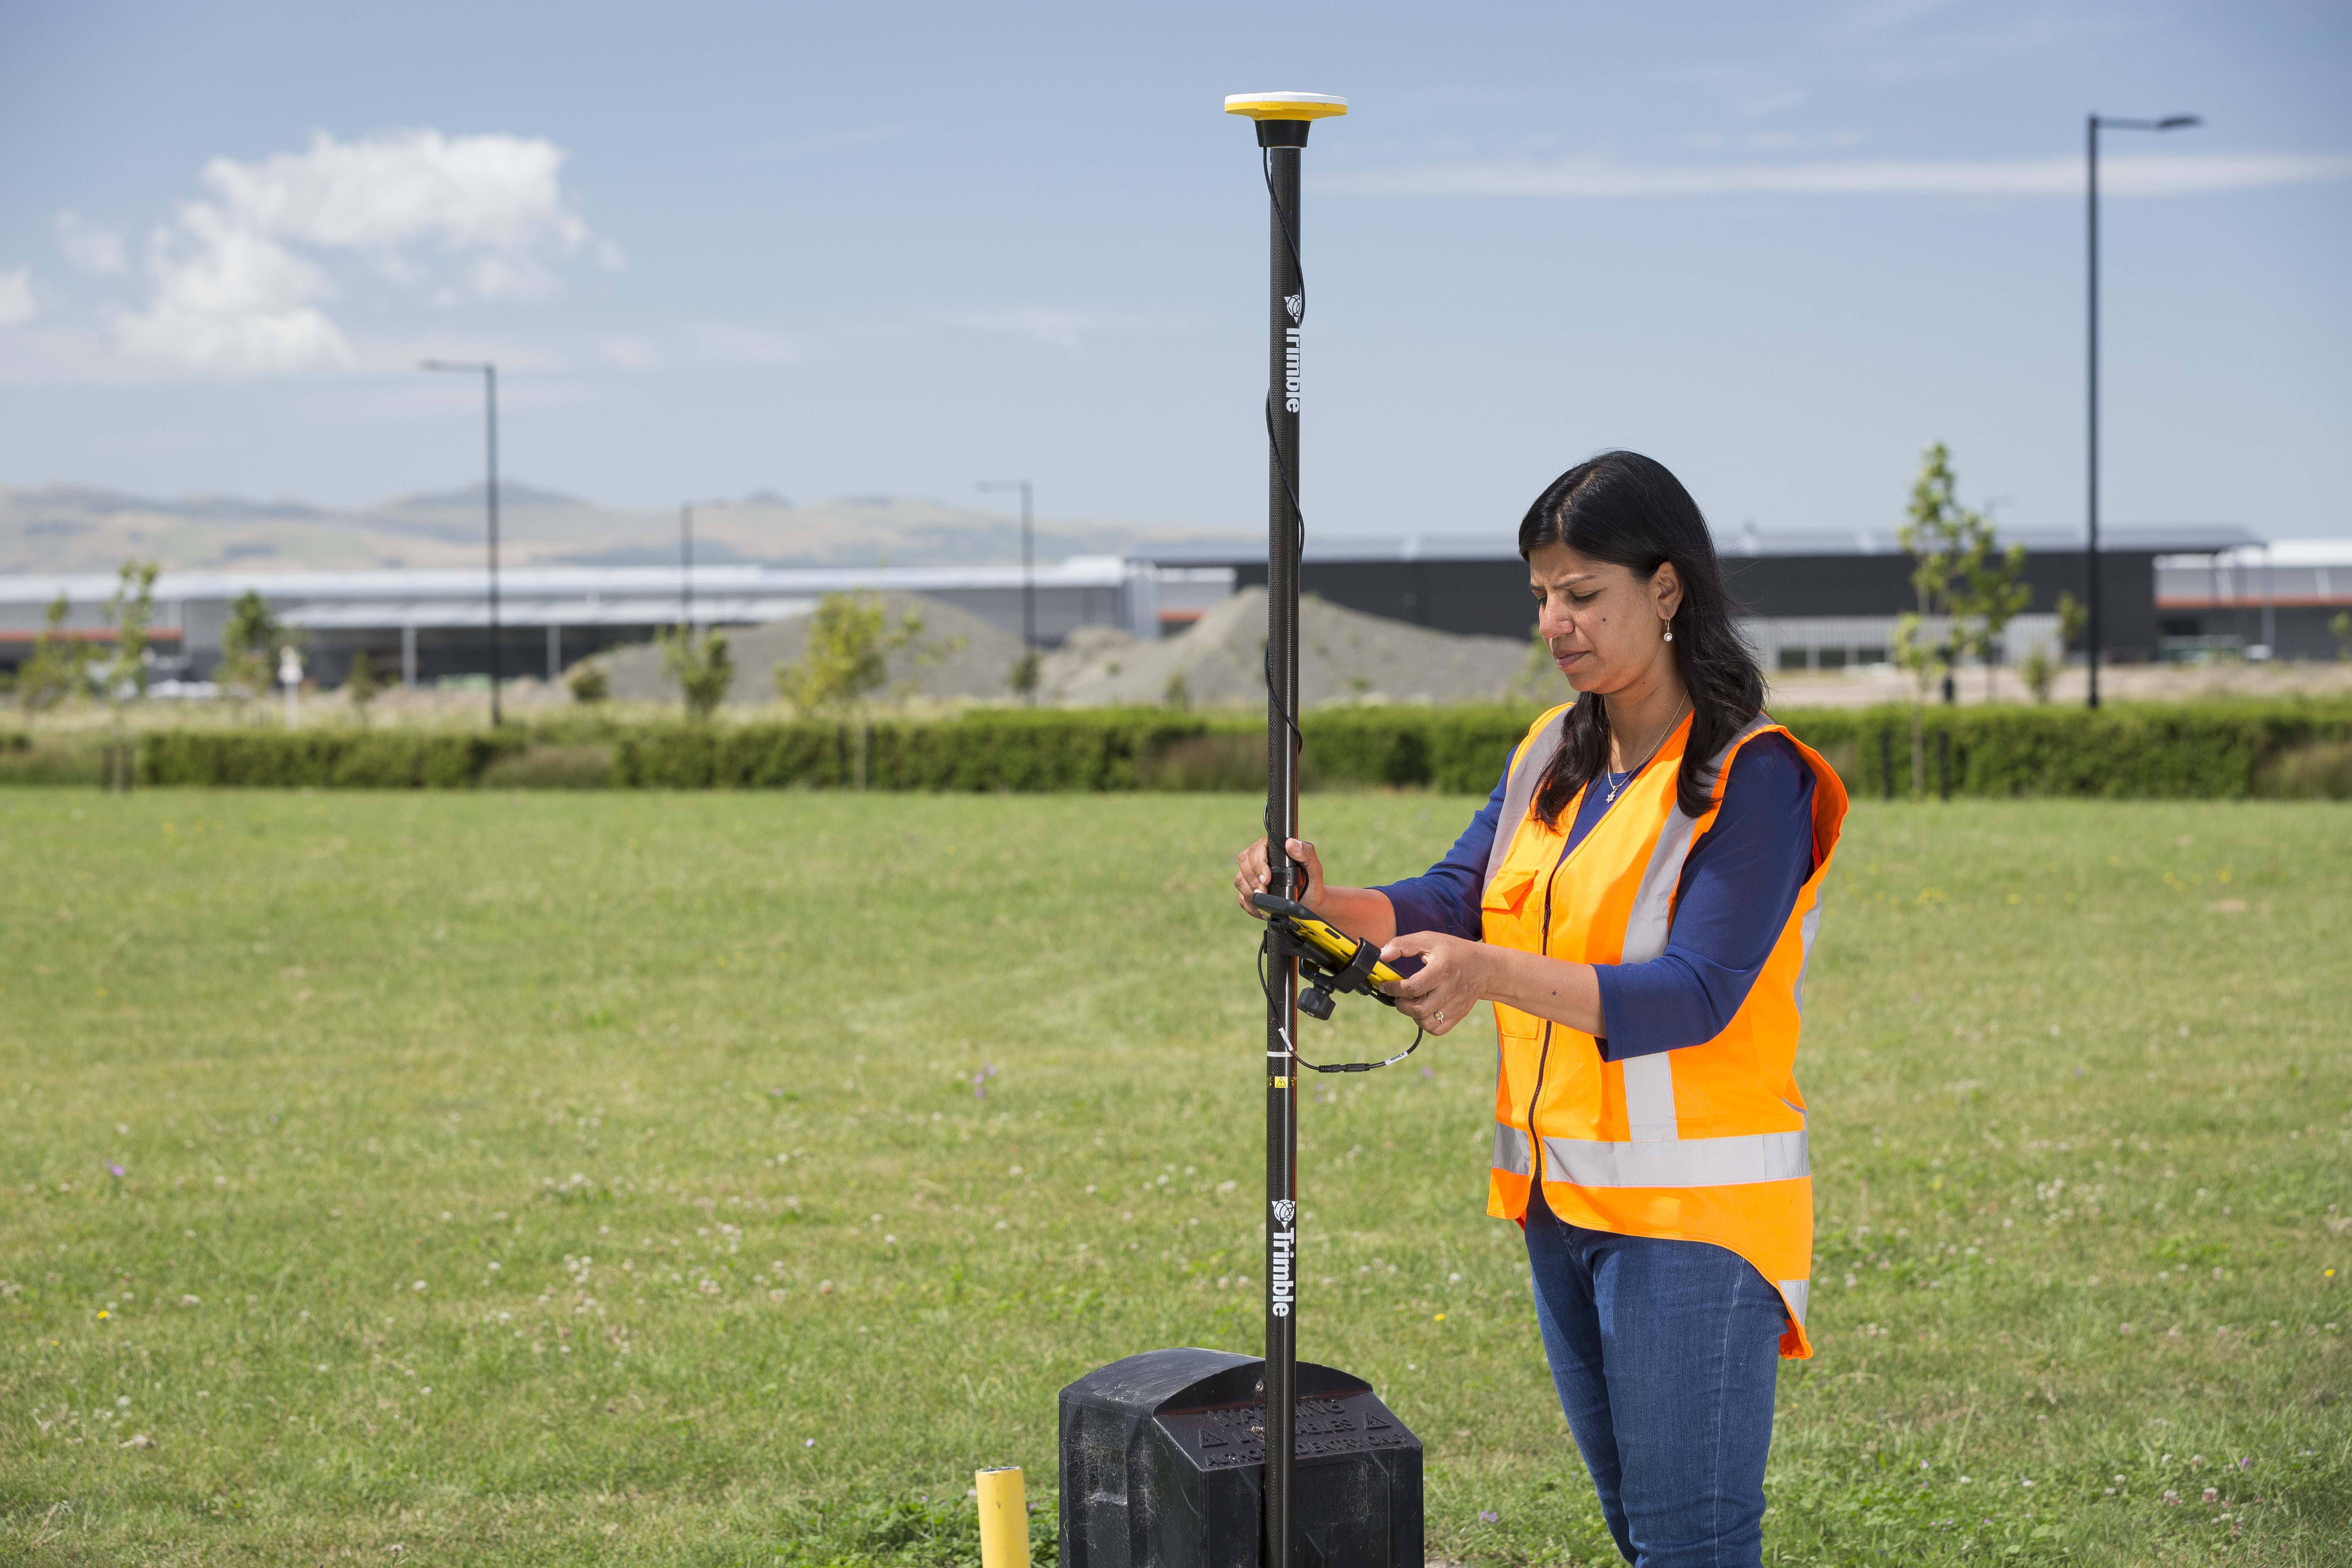 Trimble Catalyst on Demand with TDC600